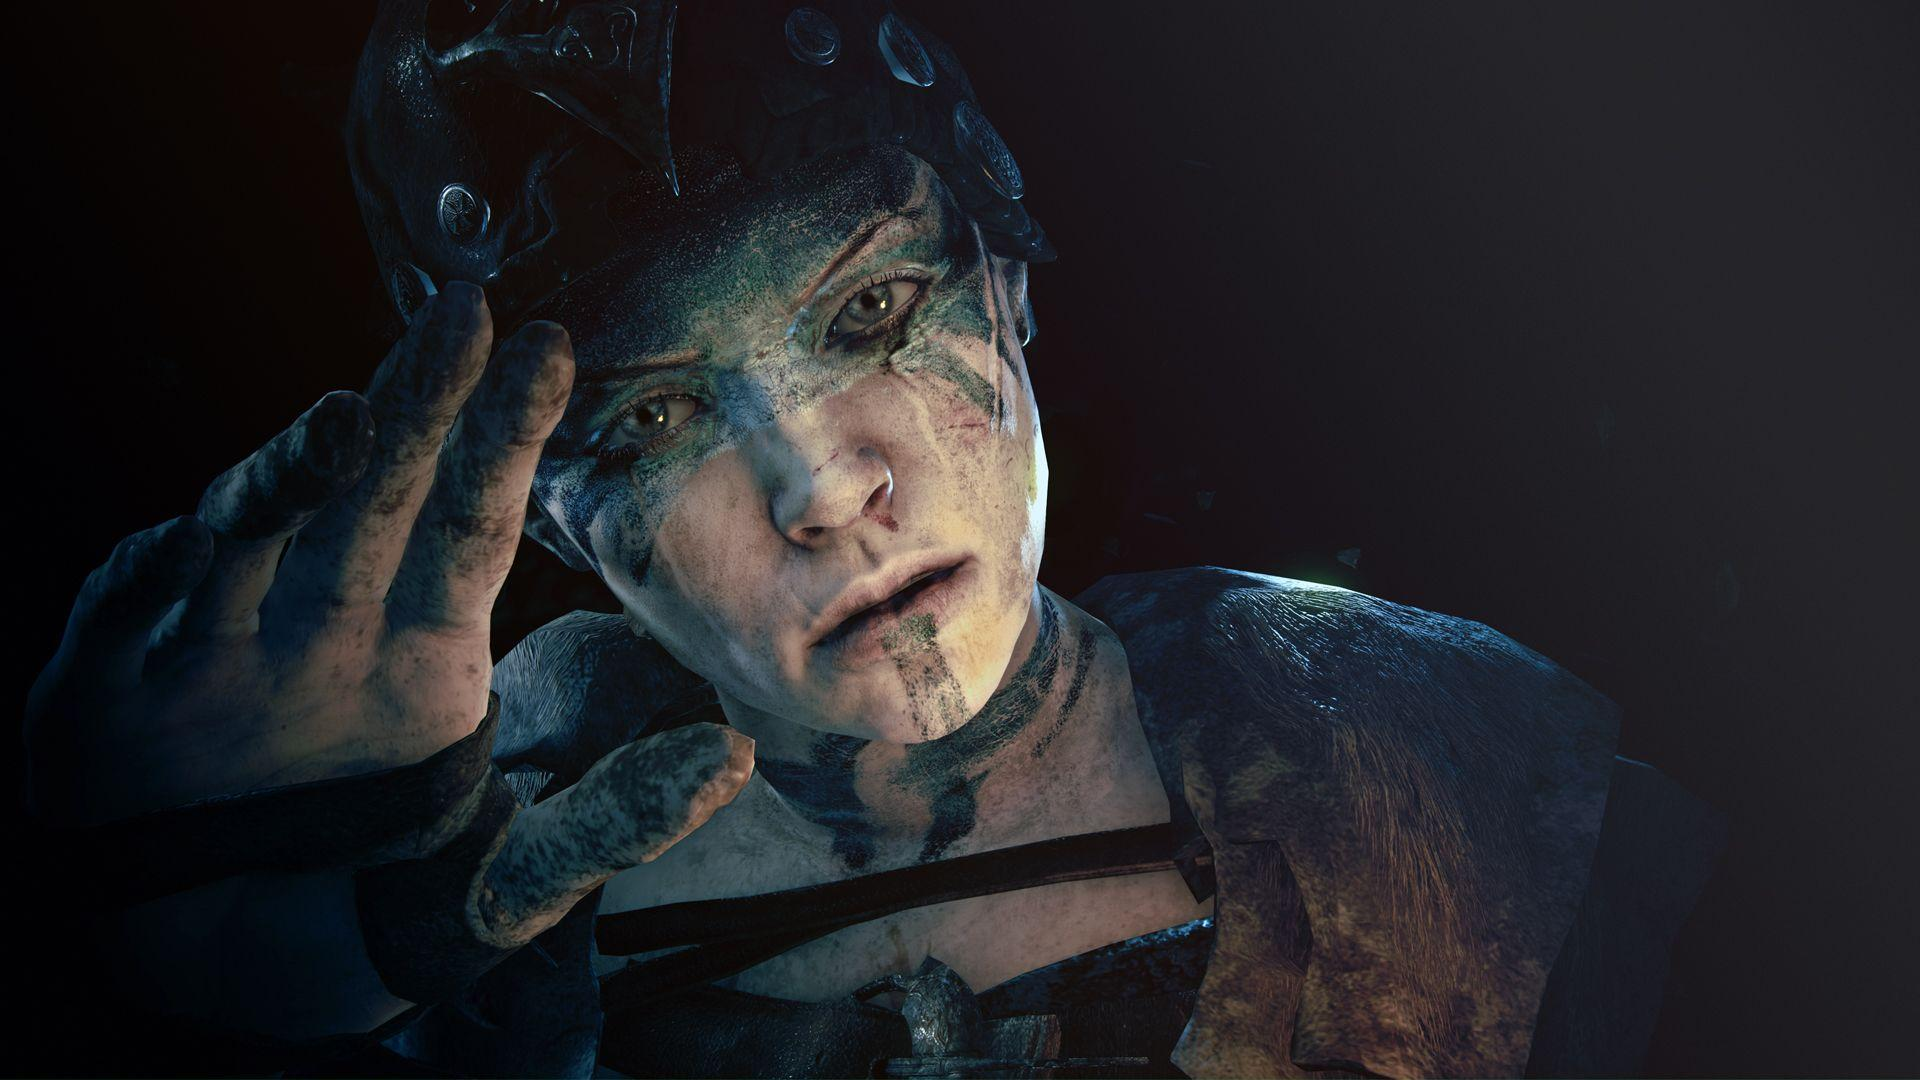 Portraying Mental Health in Hellblade: Senua's Sacrifice